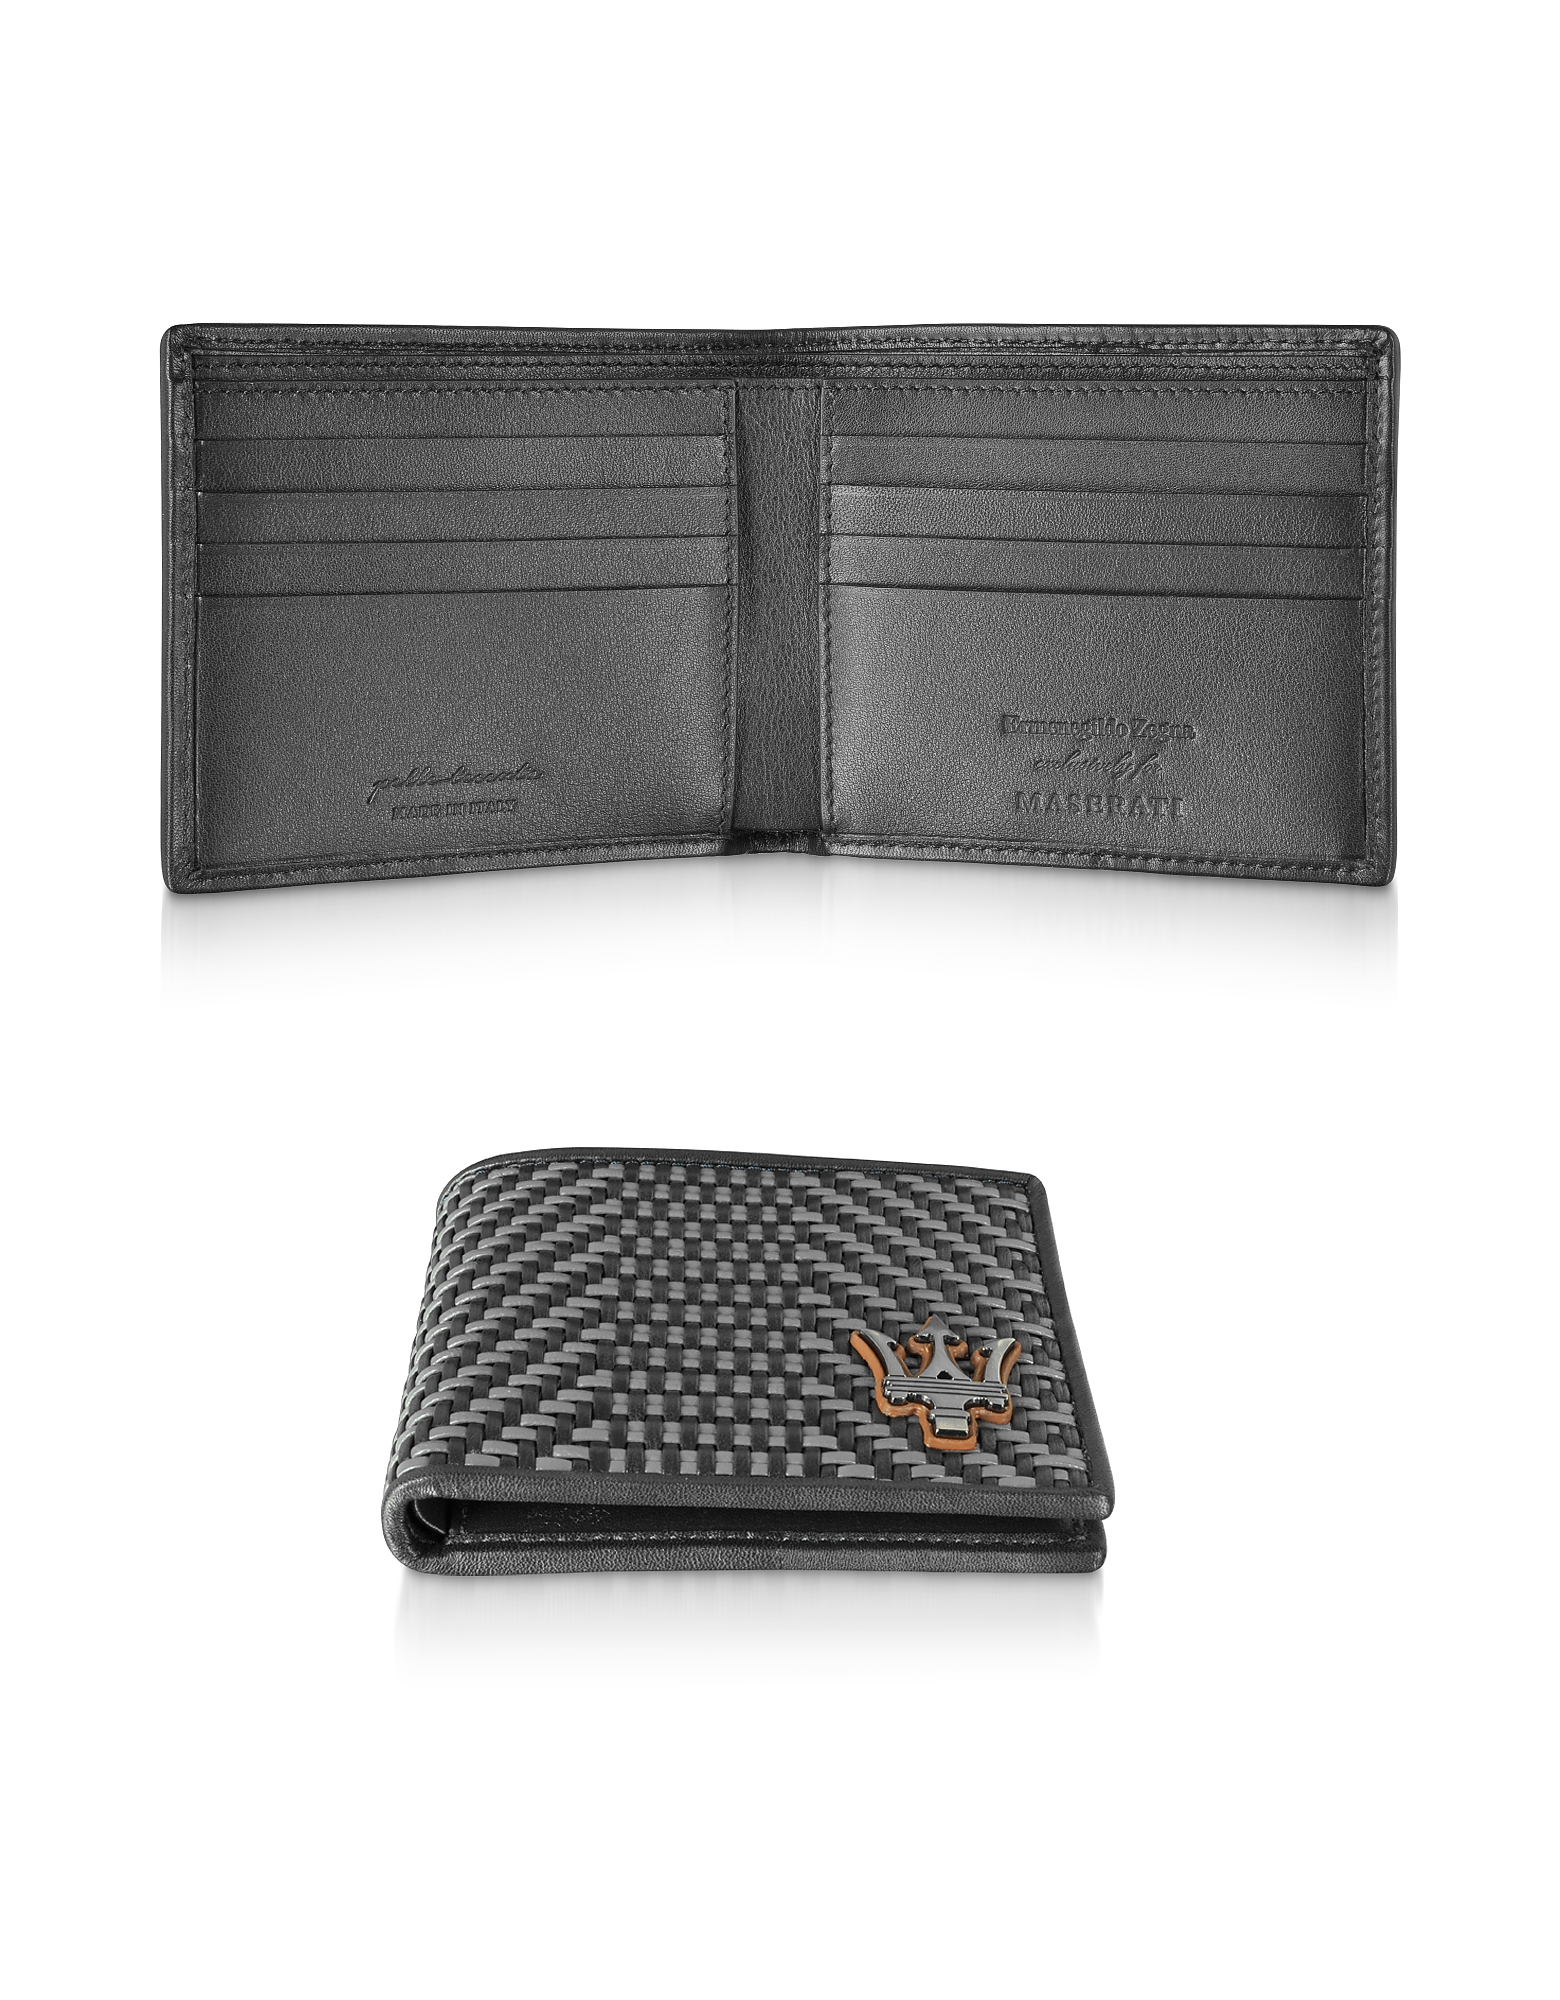 Ermenegildo Zegna Designer Wallets, Black Woven Leather Men's Billfold Wallet